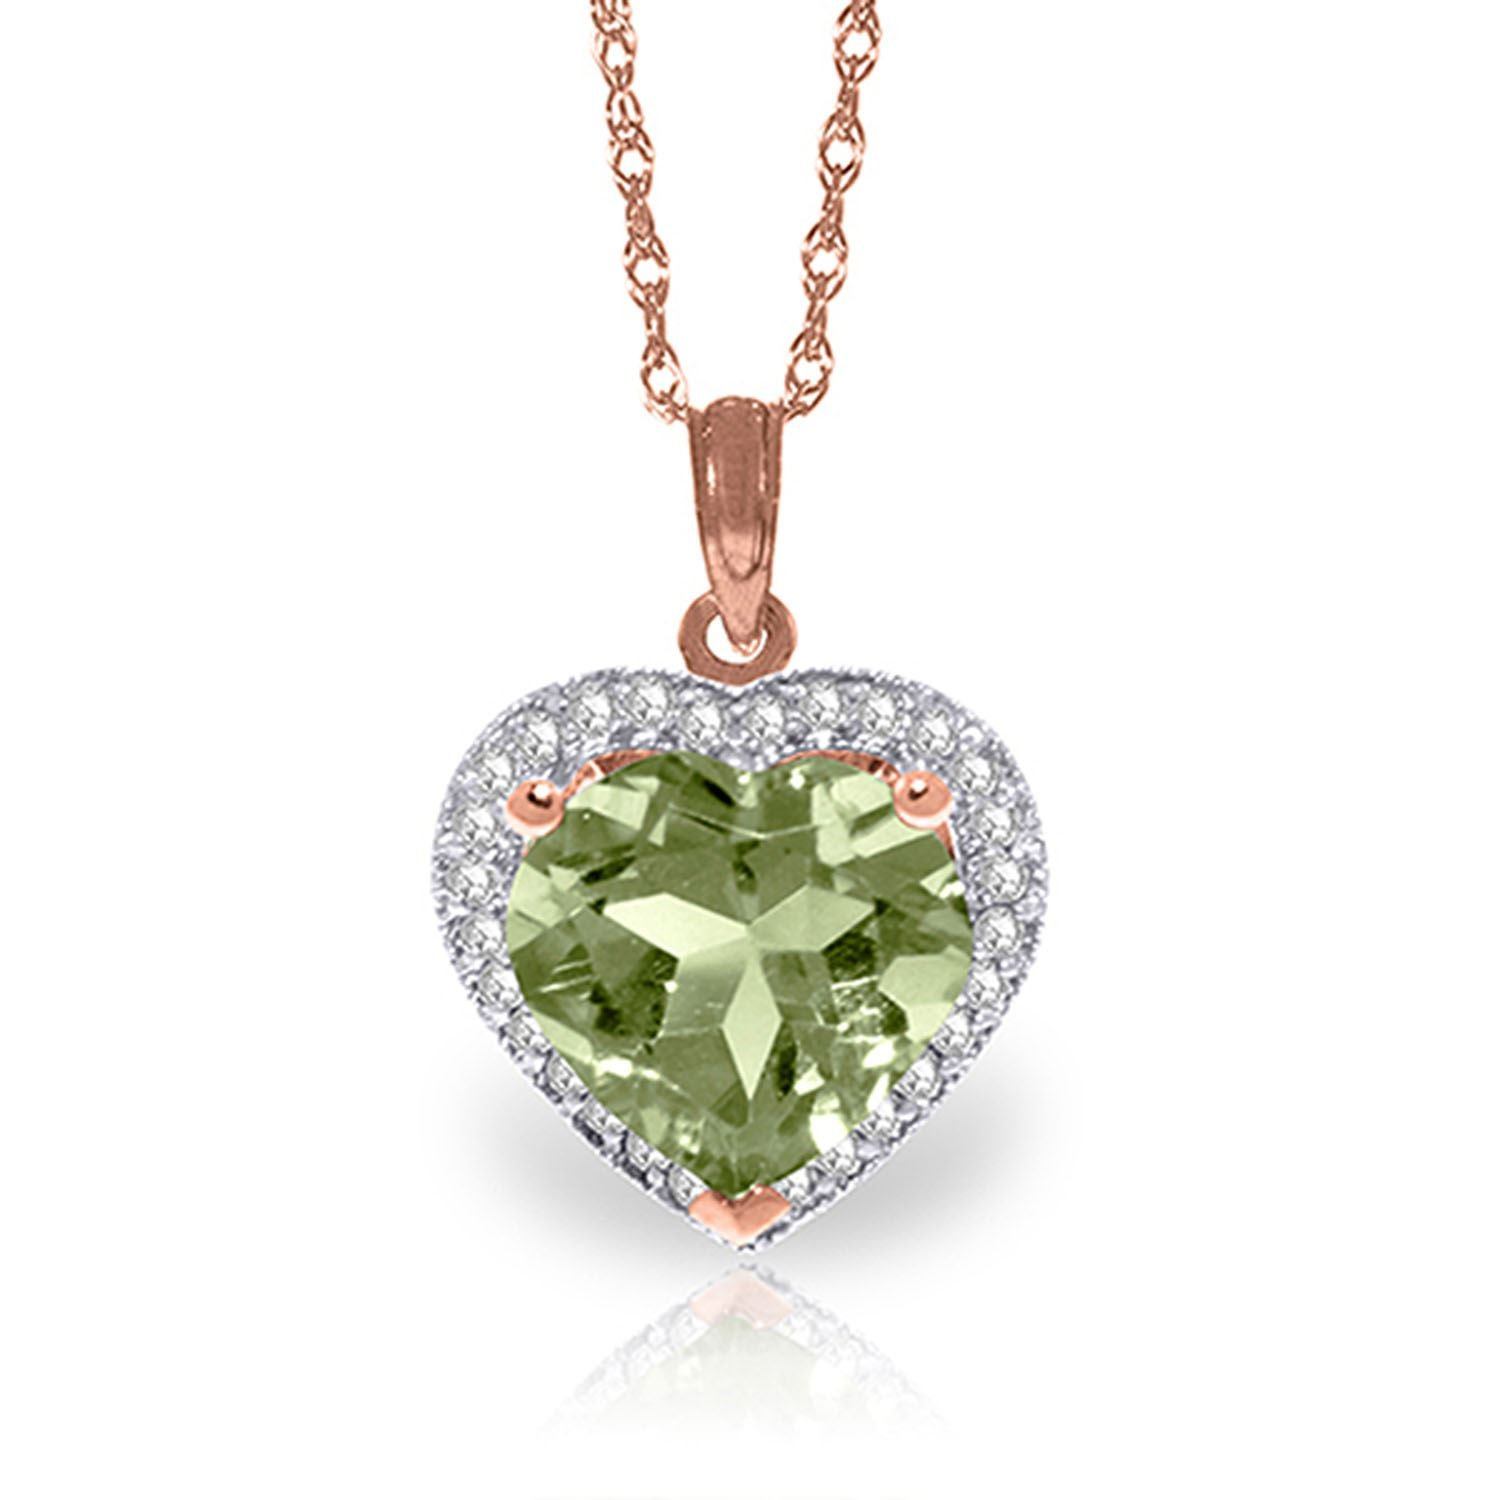 ALARRI 3.39 Carat 14K Solid Rose Gold Elizabeth Green Amethyst Diamond Necklace with 20 Inch Chain Length